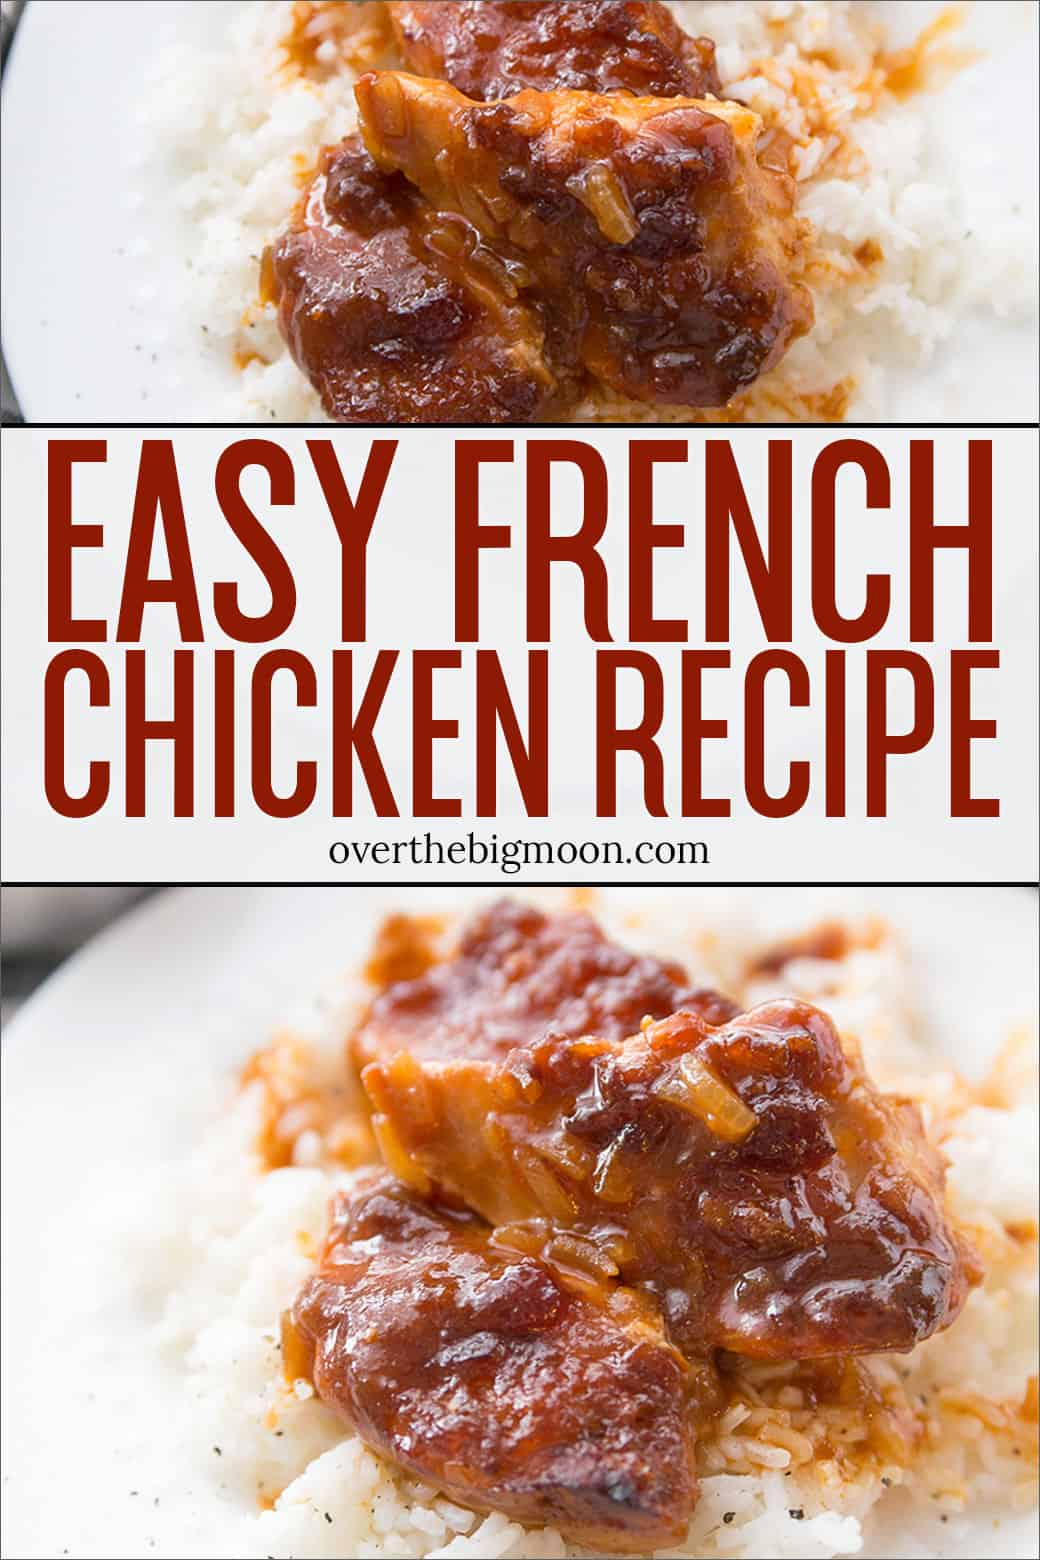 This French Chicken recipe is only made up of 4 ingredients, making it one of my easiest go-to recipes! It can be made in the oven, Crockpot and Instant Pot! From overthebigmoon.com!